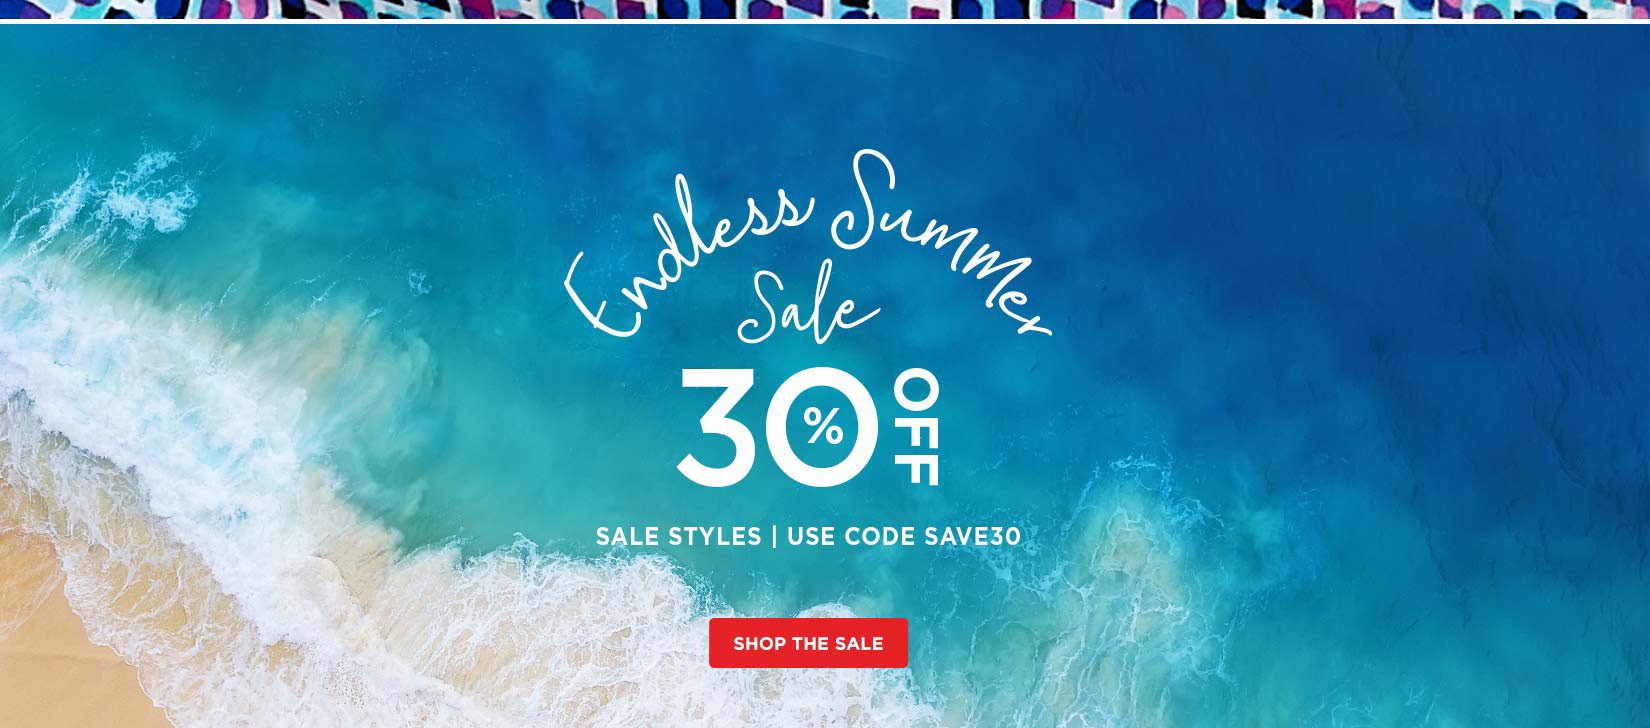 Endless Summer Sale! 30%Off Sale and Clearance Items - USE CODE: SAVE30